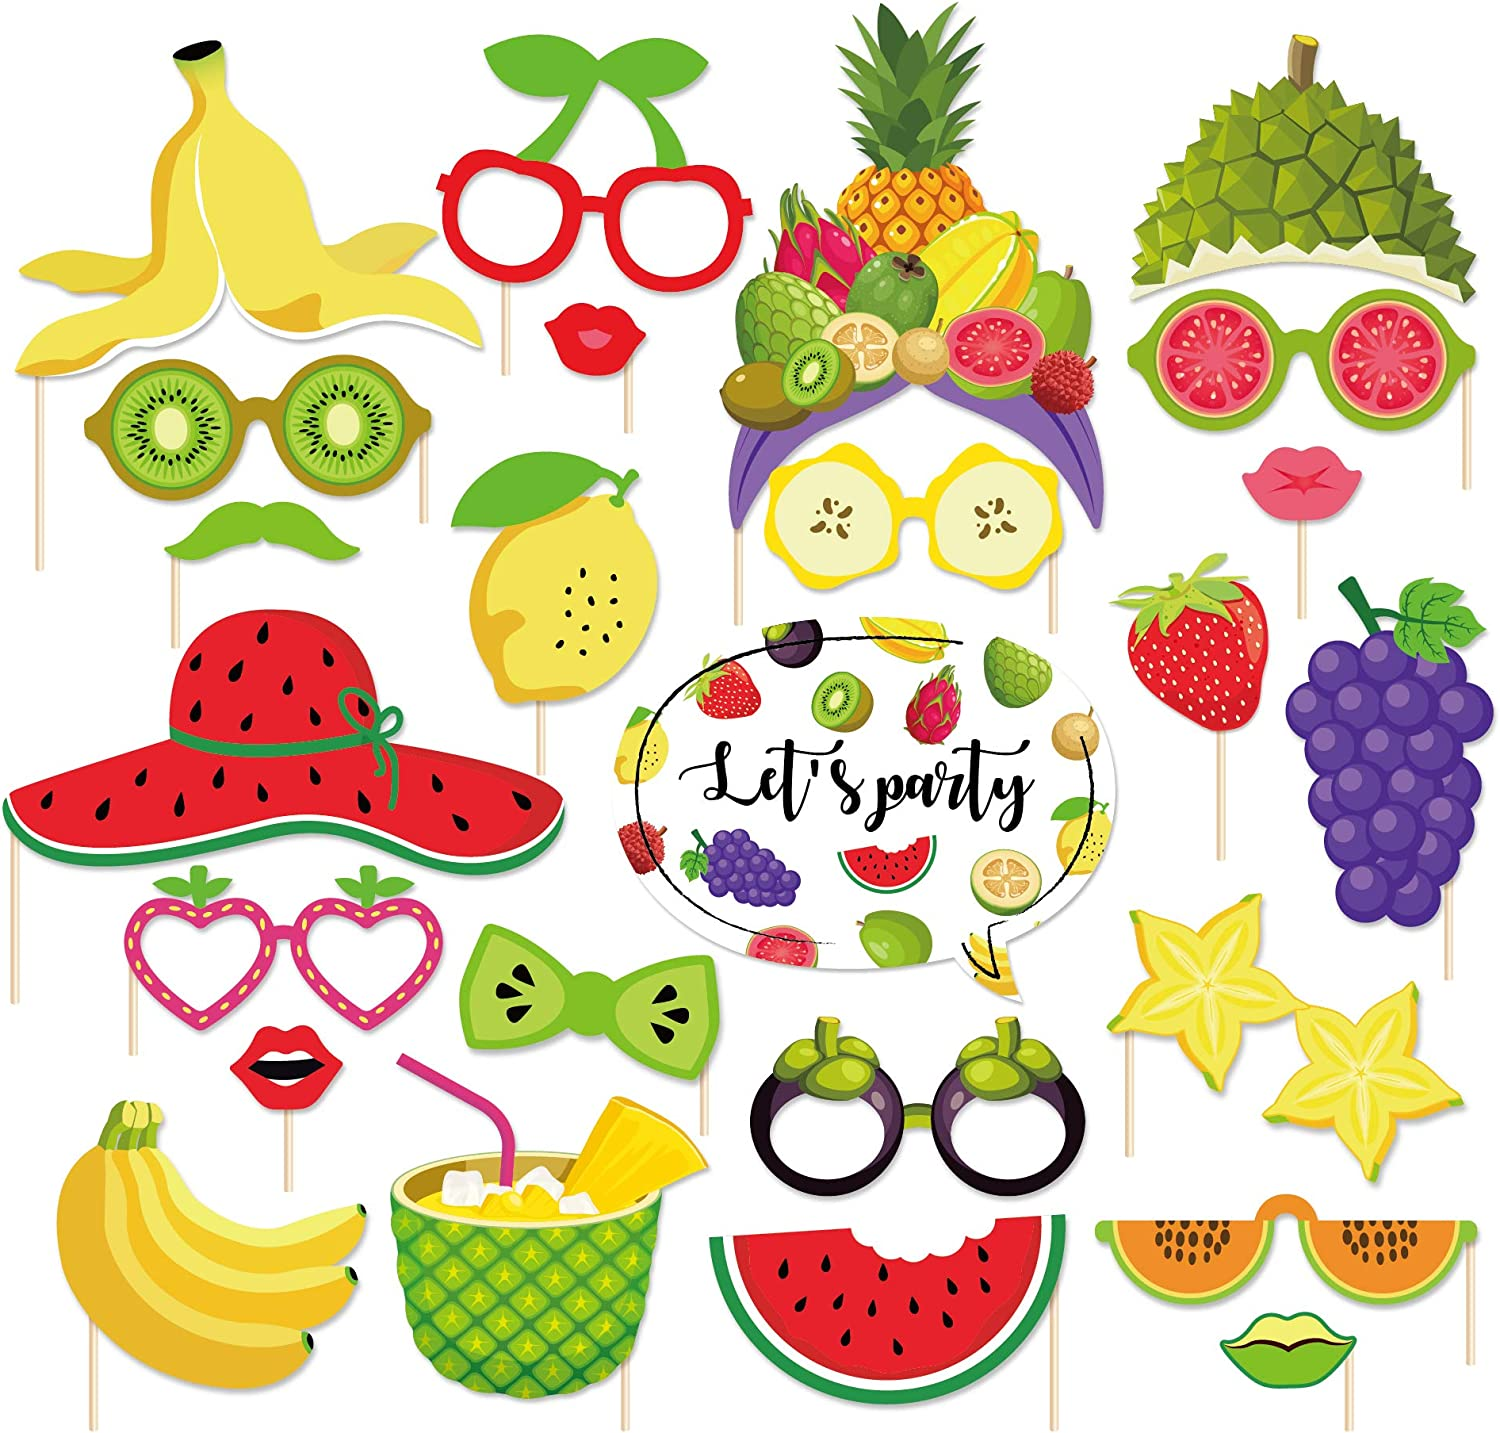 CC HOME 25Ct Two-tti Frutti Photo Booth Props,Fruit Party Decorations,Party Favor for Summer Fruit Party Supplies